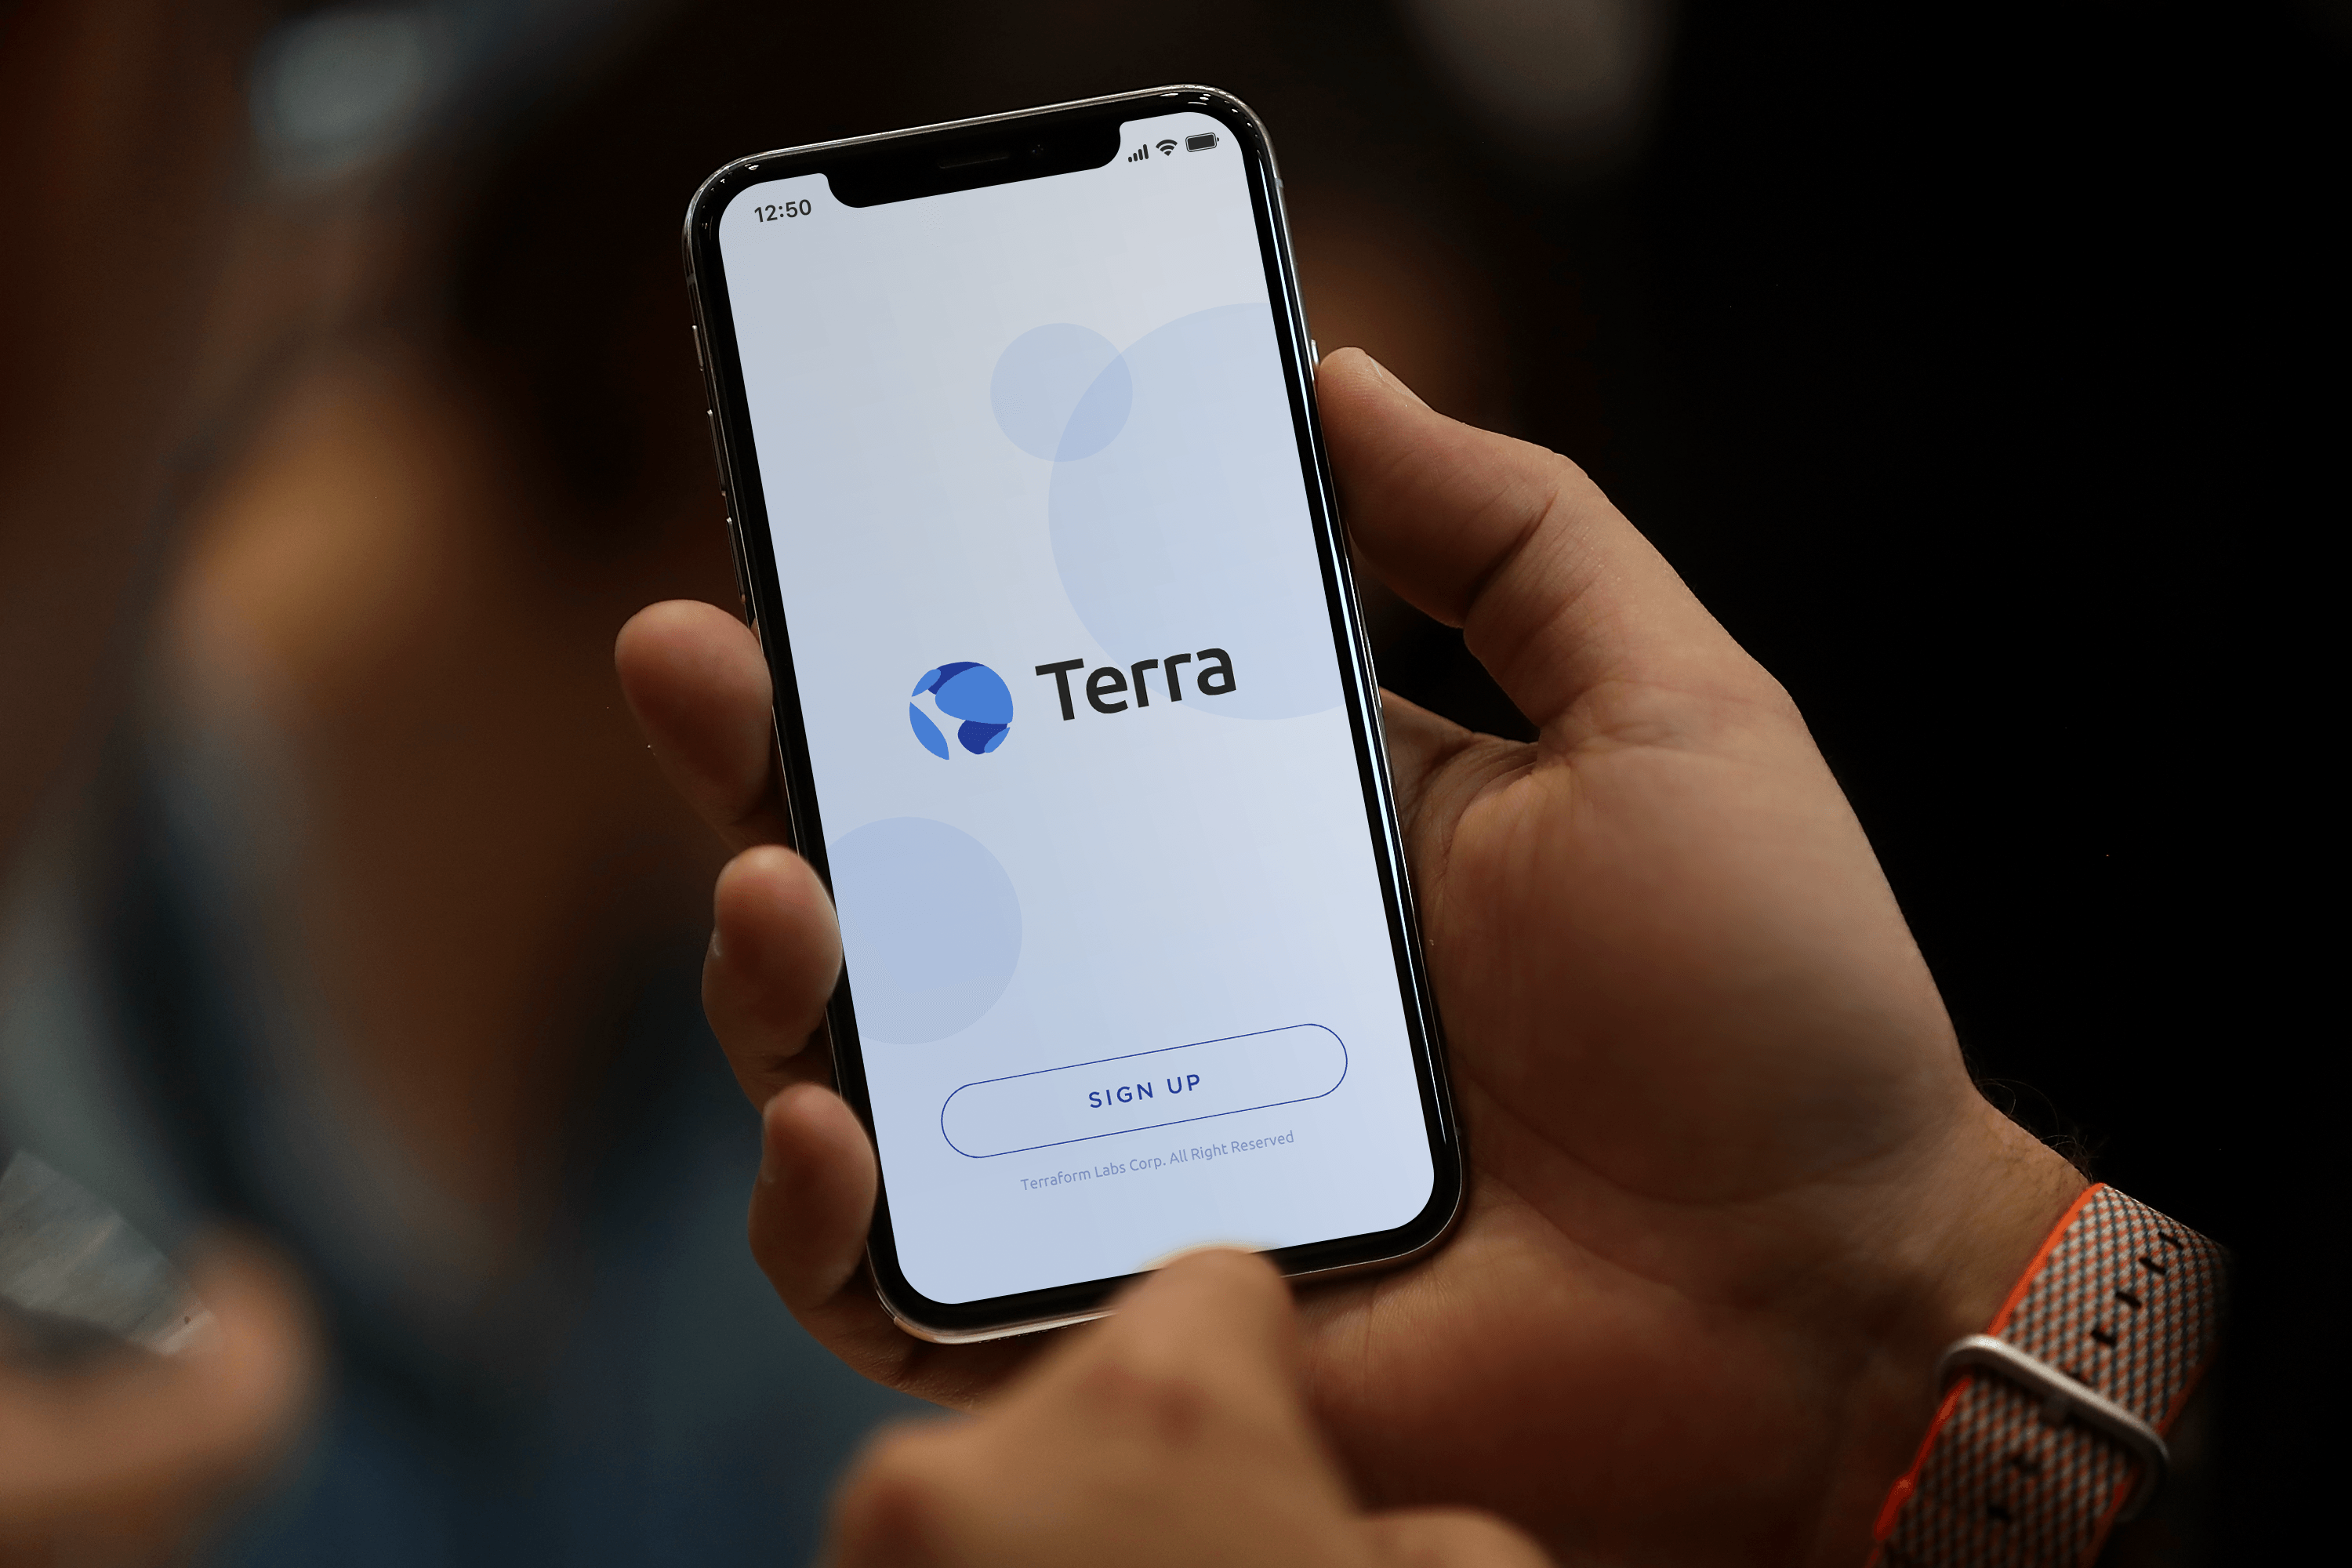 Blockchain firm Terra banks investment from HashKey Capital